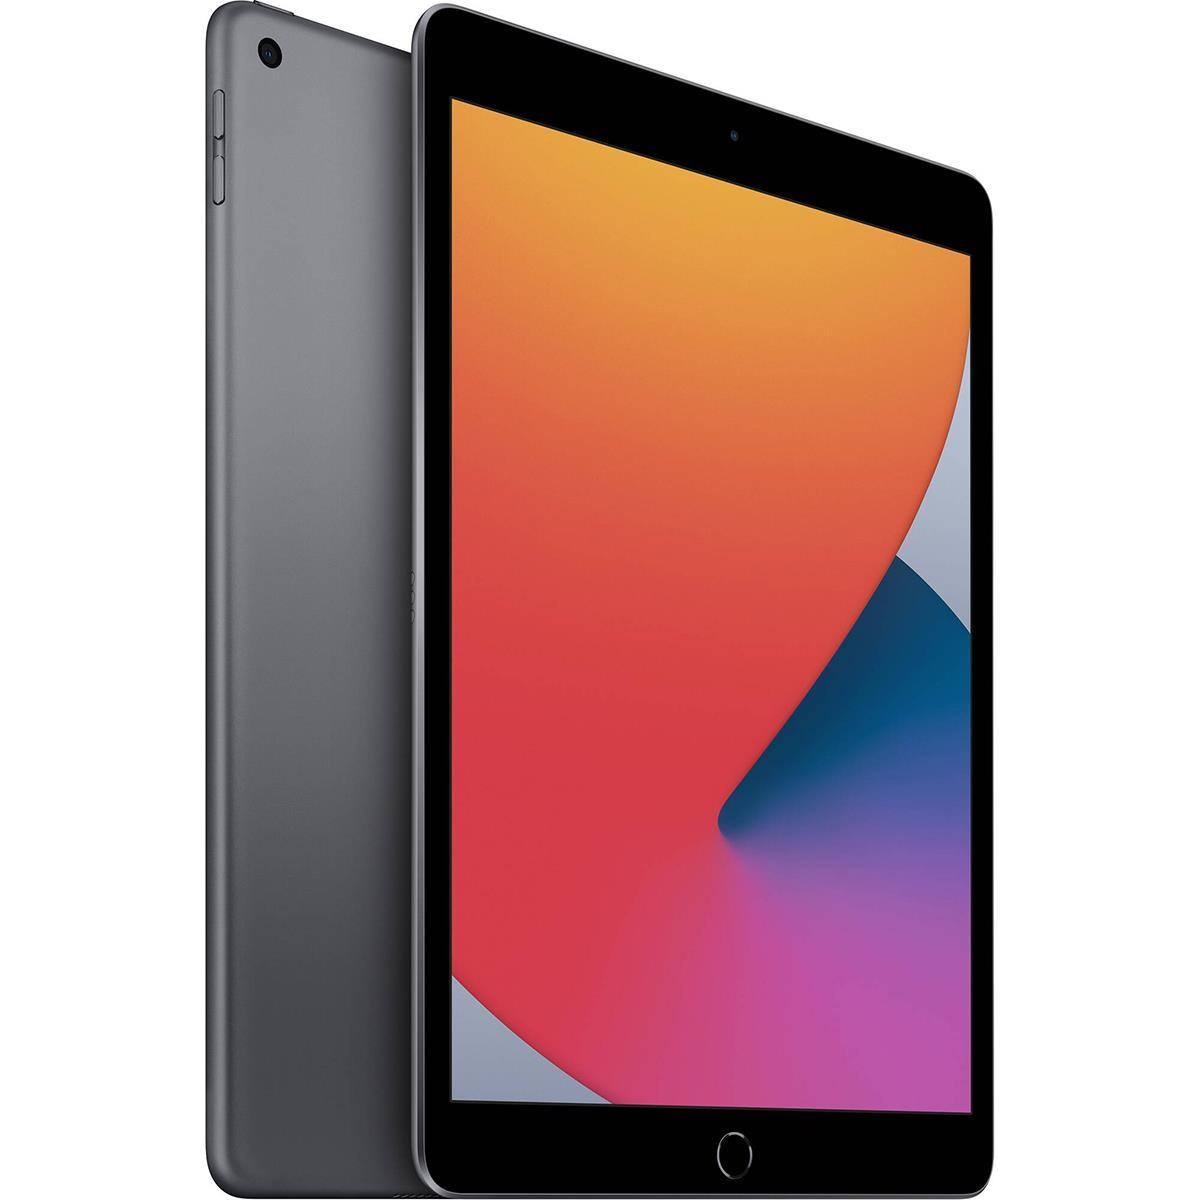 "Apple iPad 8 - 10.2"" (Space Gray) Wi-Fi only - 32GB"